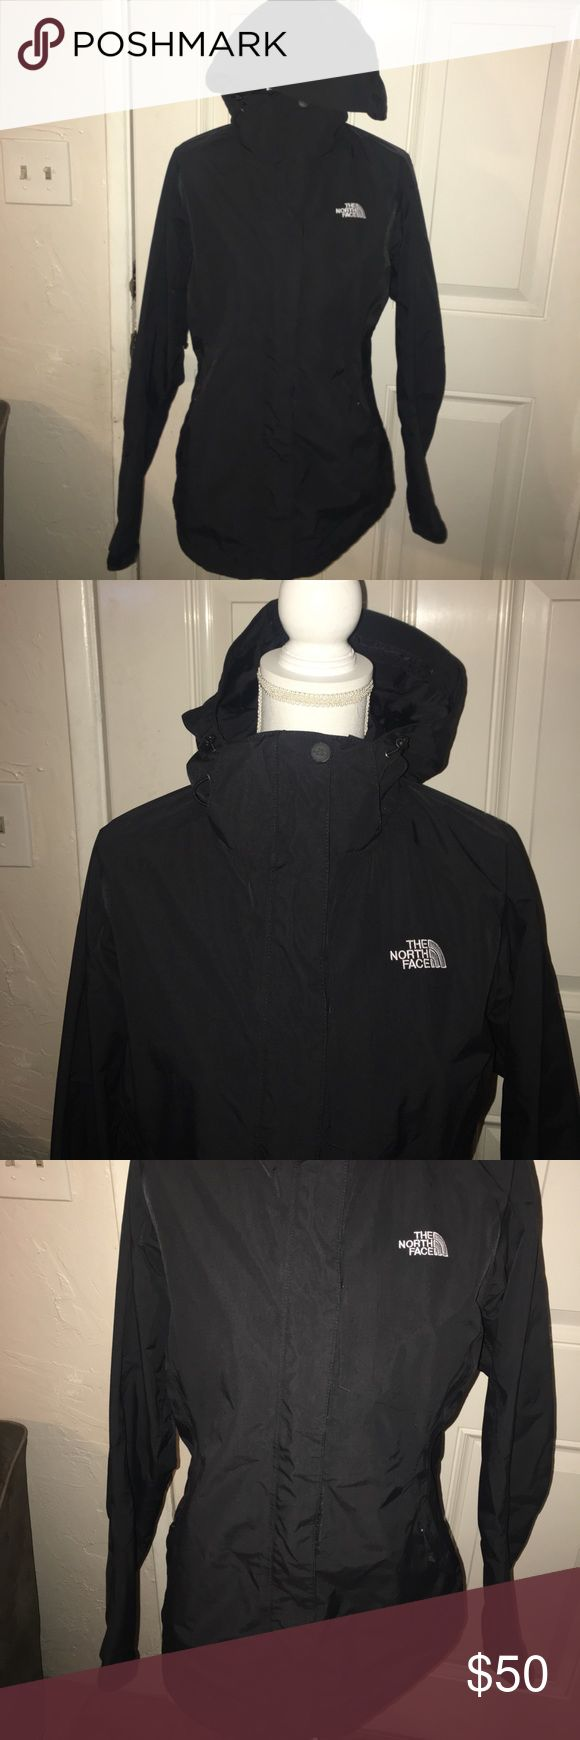 North Face Black Jacket with Hood L In great condition North Face Black wind breaker Jacket with Hood Size Large. The North Face Jackets & Coats